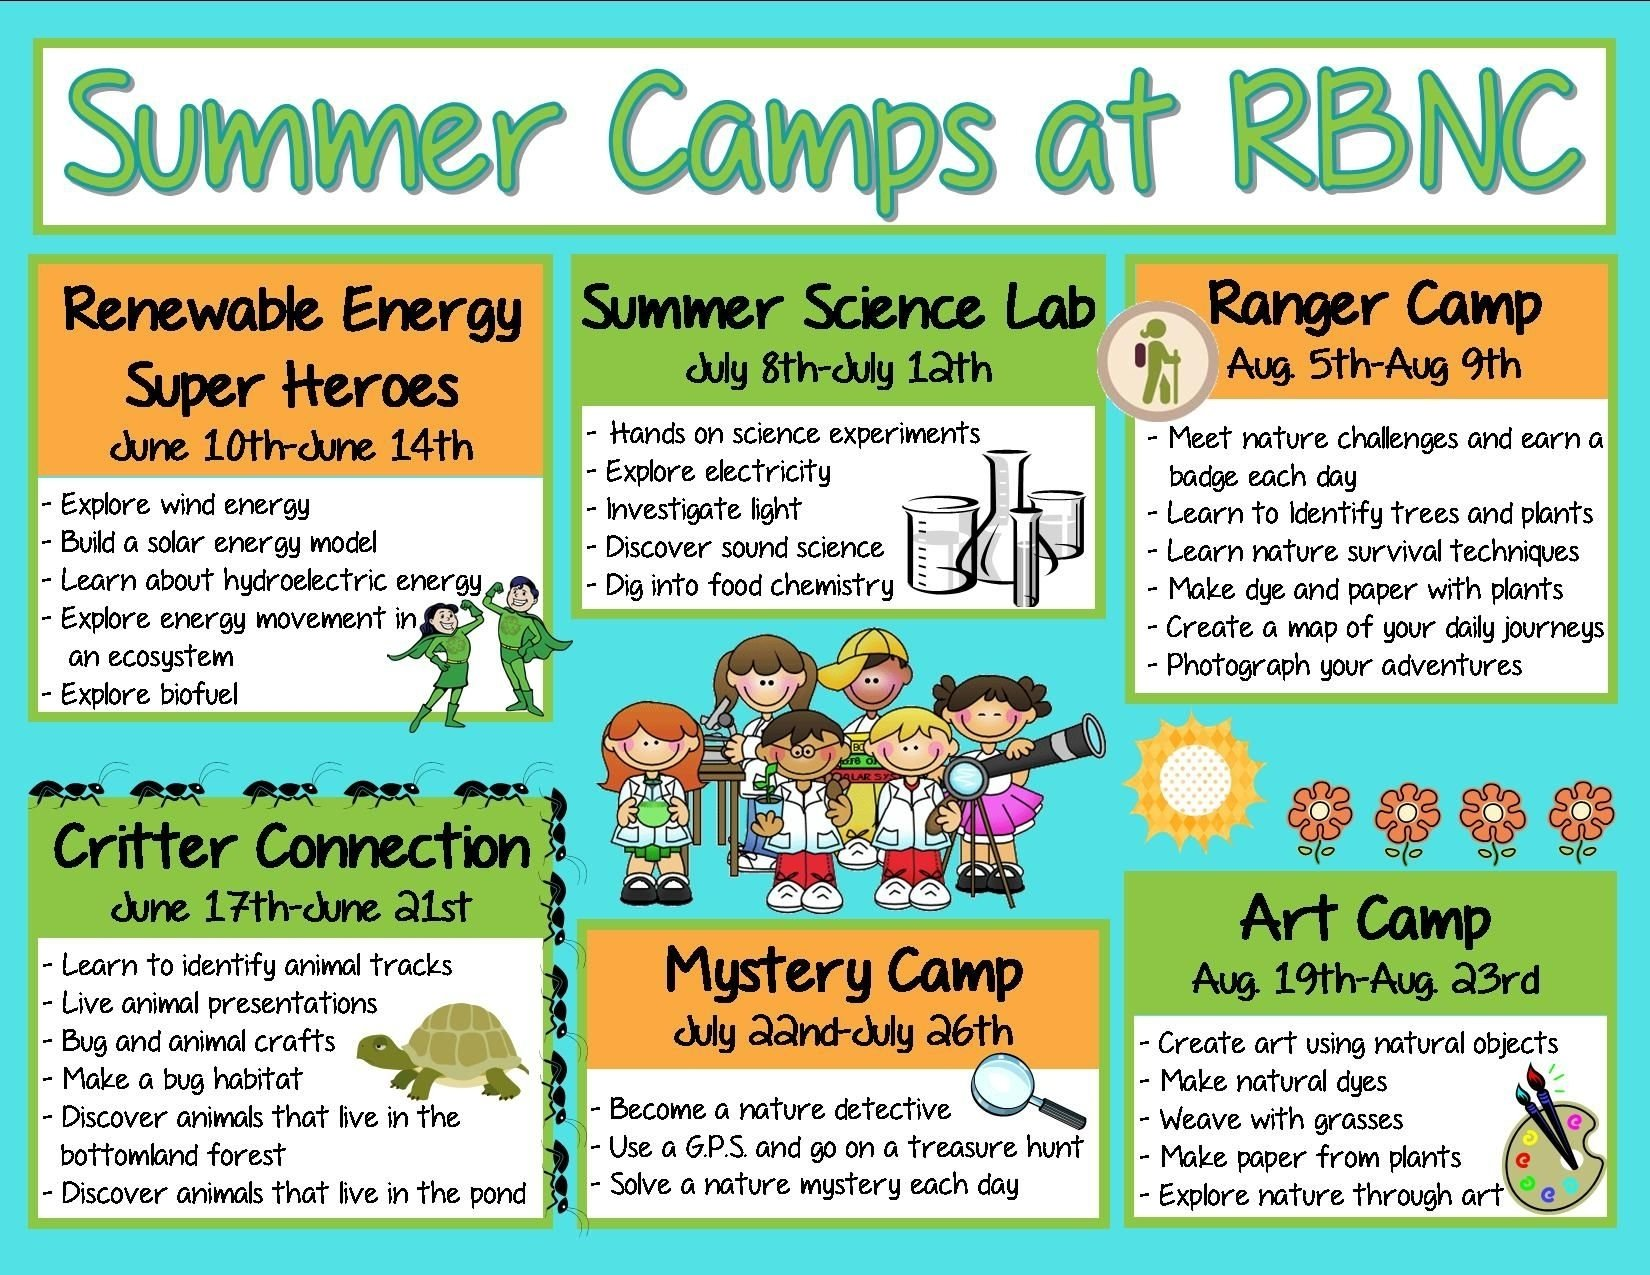 10 Best Summer Camp Weekly Theme Ideas summer camp themes summer camps for everyone at river bend kauz 2 2021